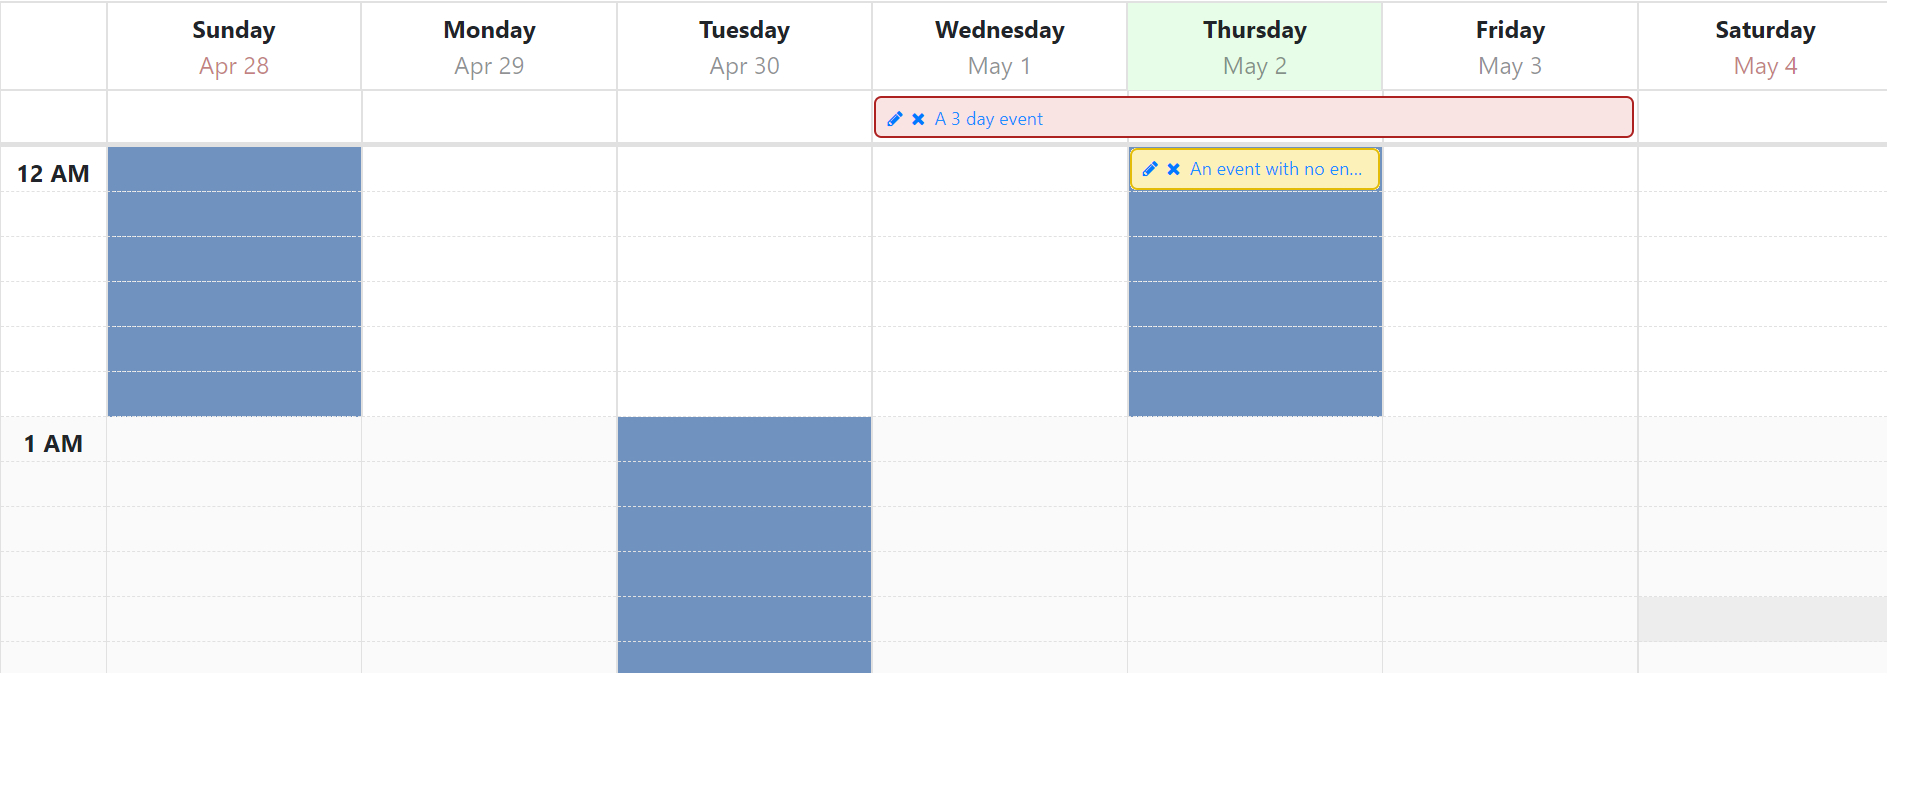 How To Use Ng-Template In Angular Calendar Week View To Show